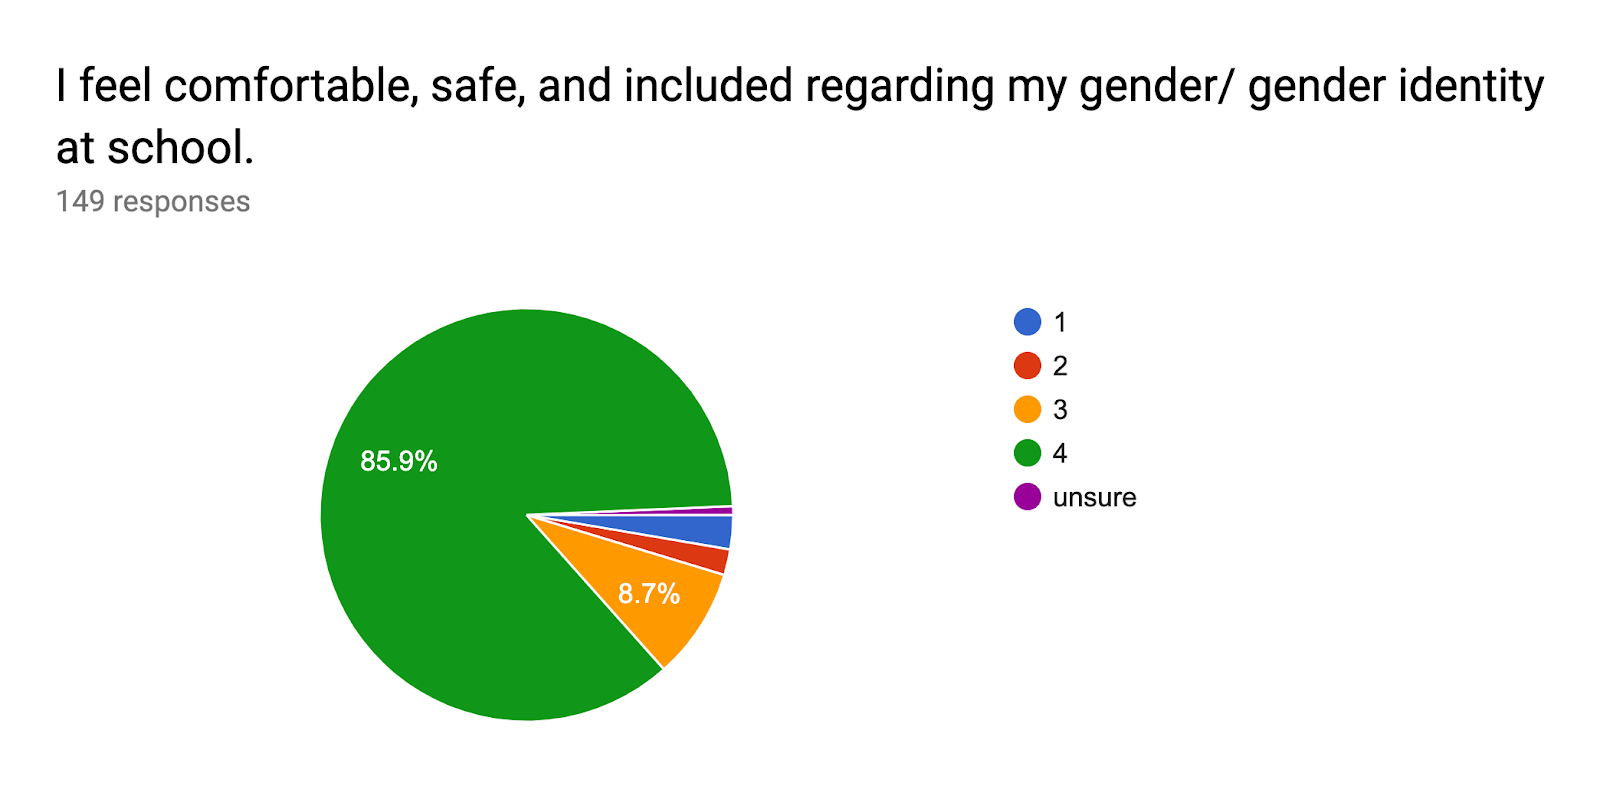 Forms response chart. Question title: I feel comfortable, safe, and included regarding my gender/ gender identity at school.. Number of responses: 149 responses.